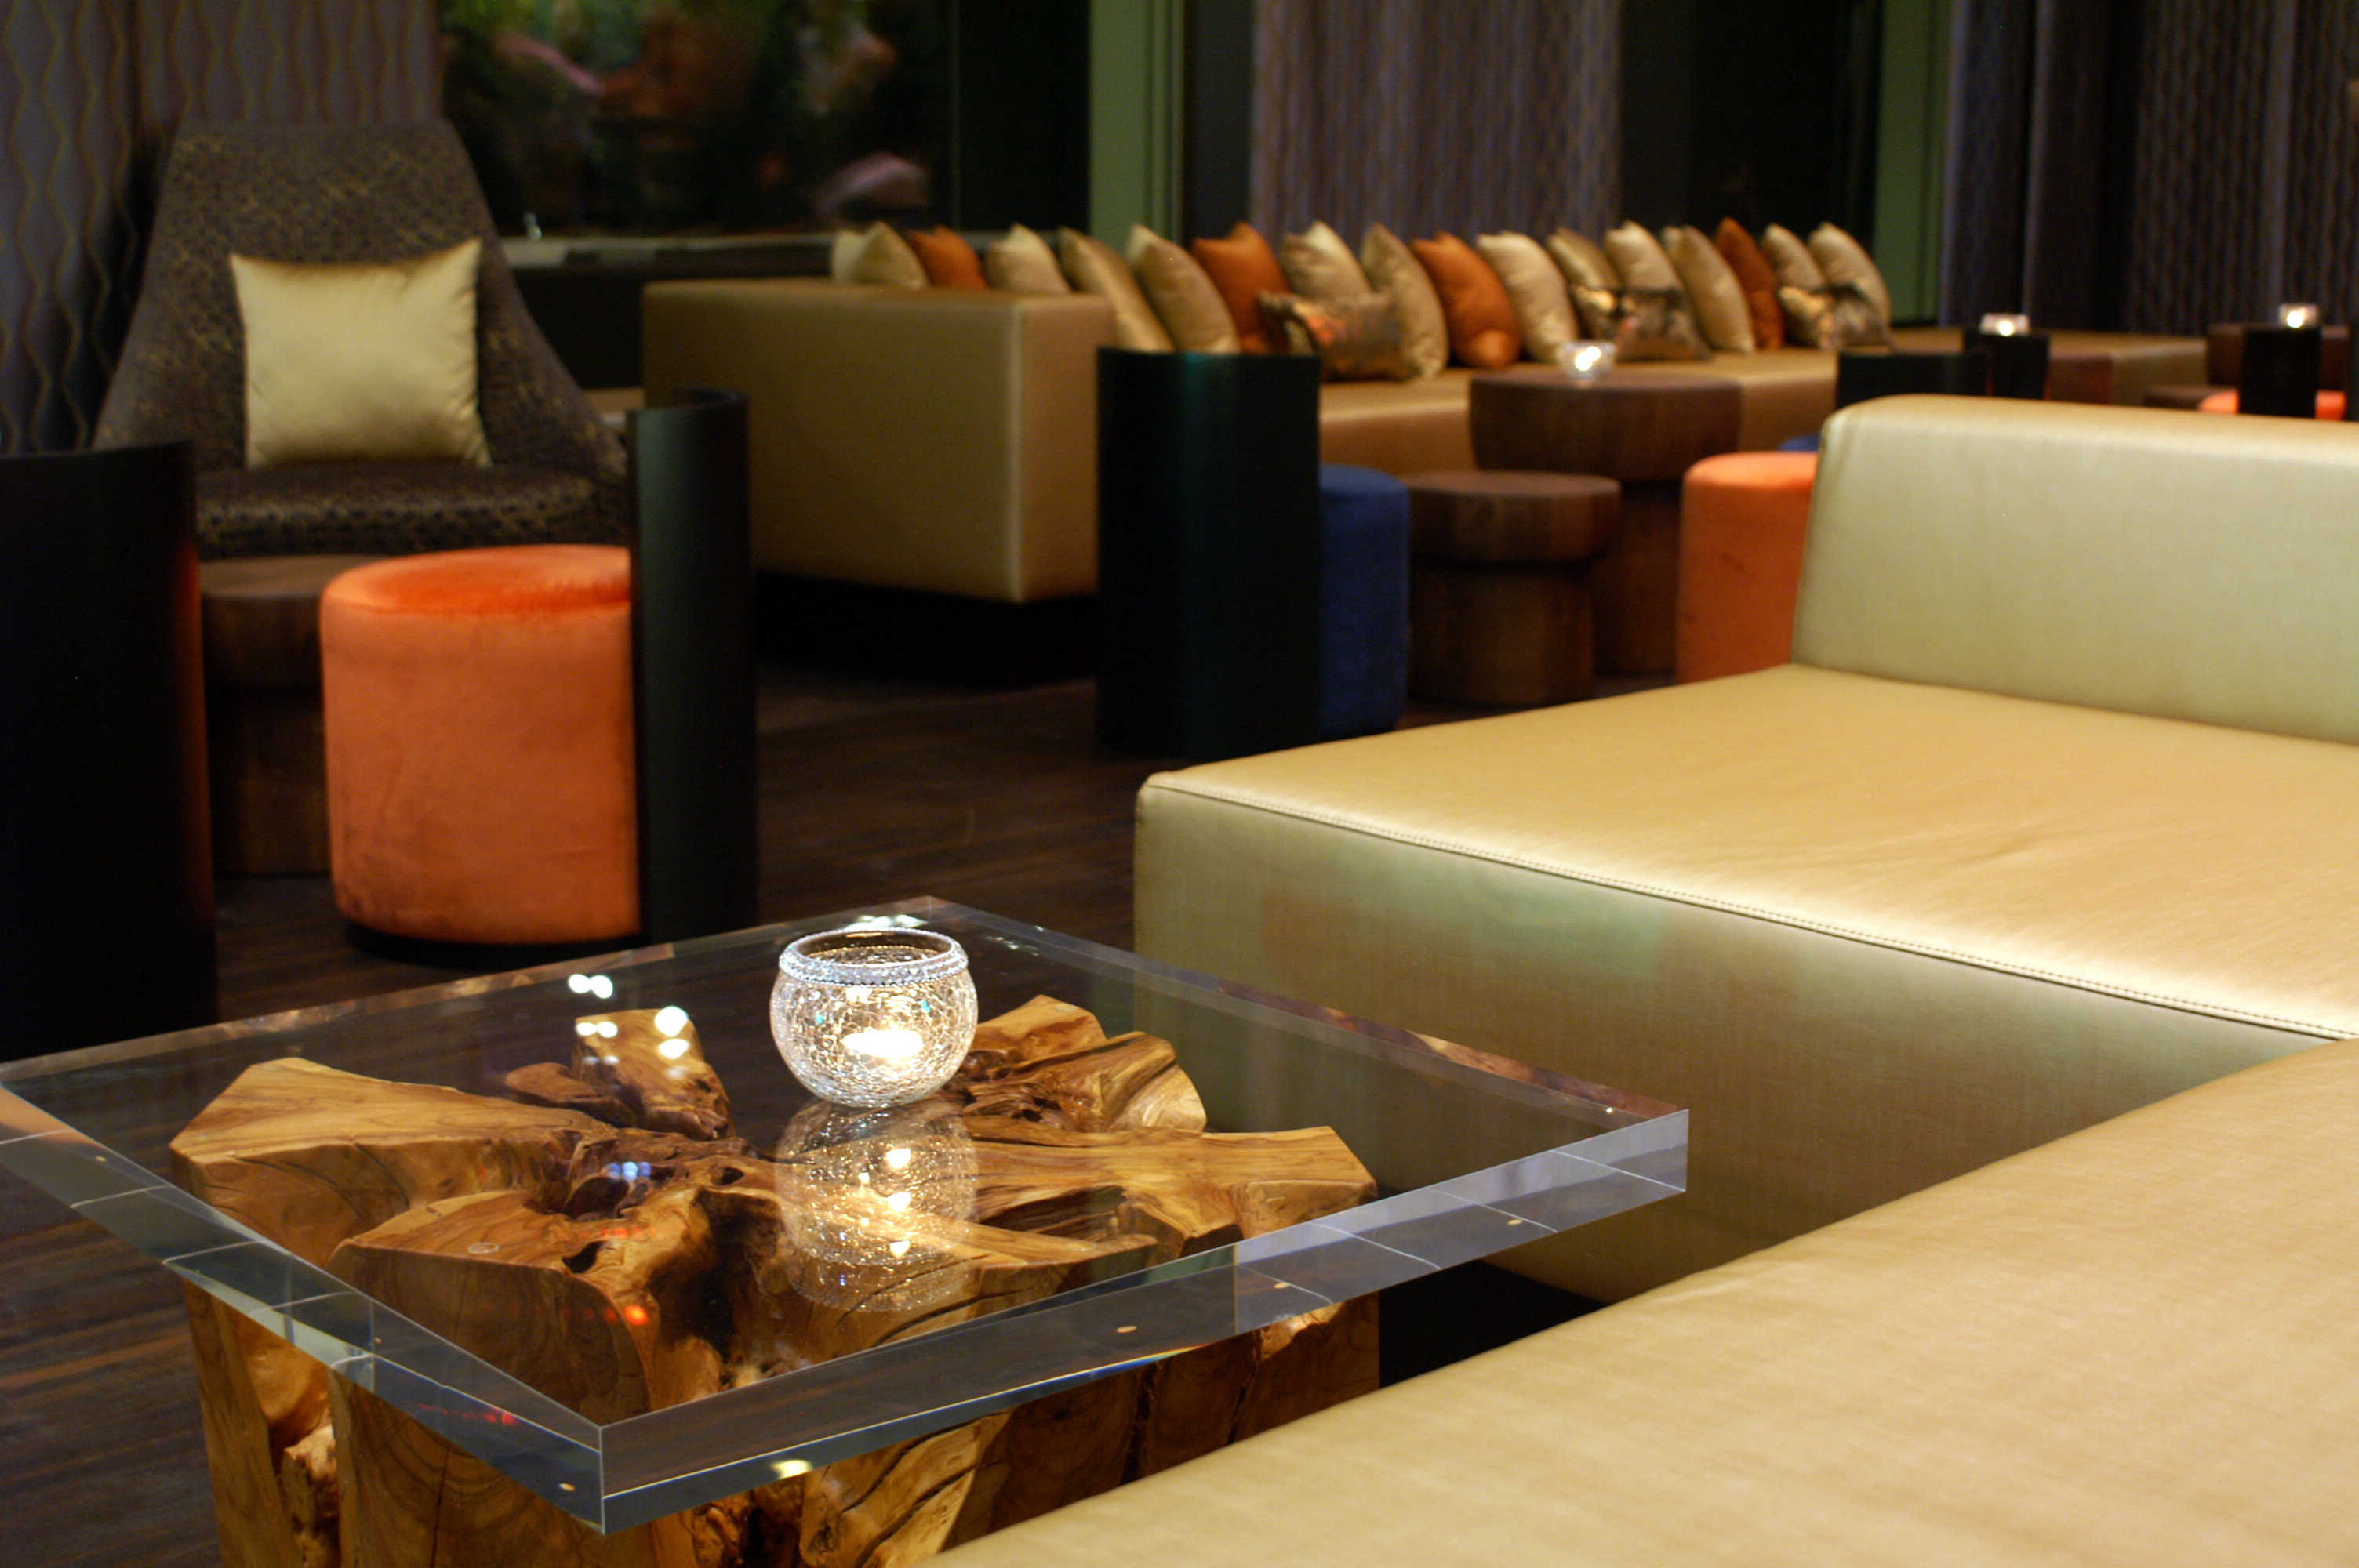 View of lounge table and couch pillows at the Renaissance Zurich Tower Hotel lobby.